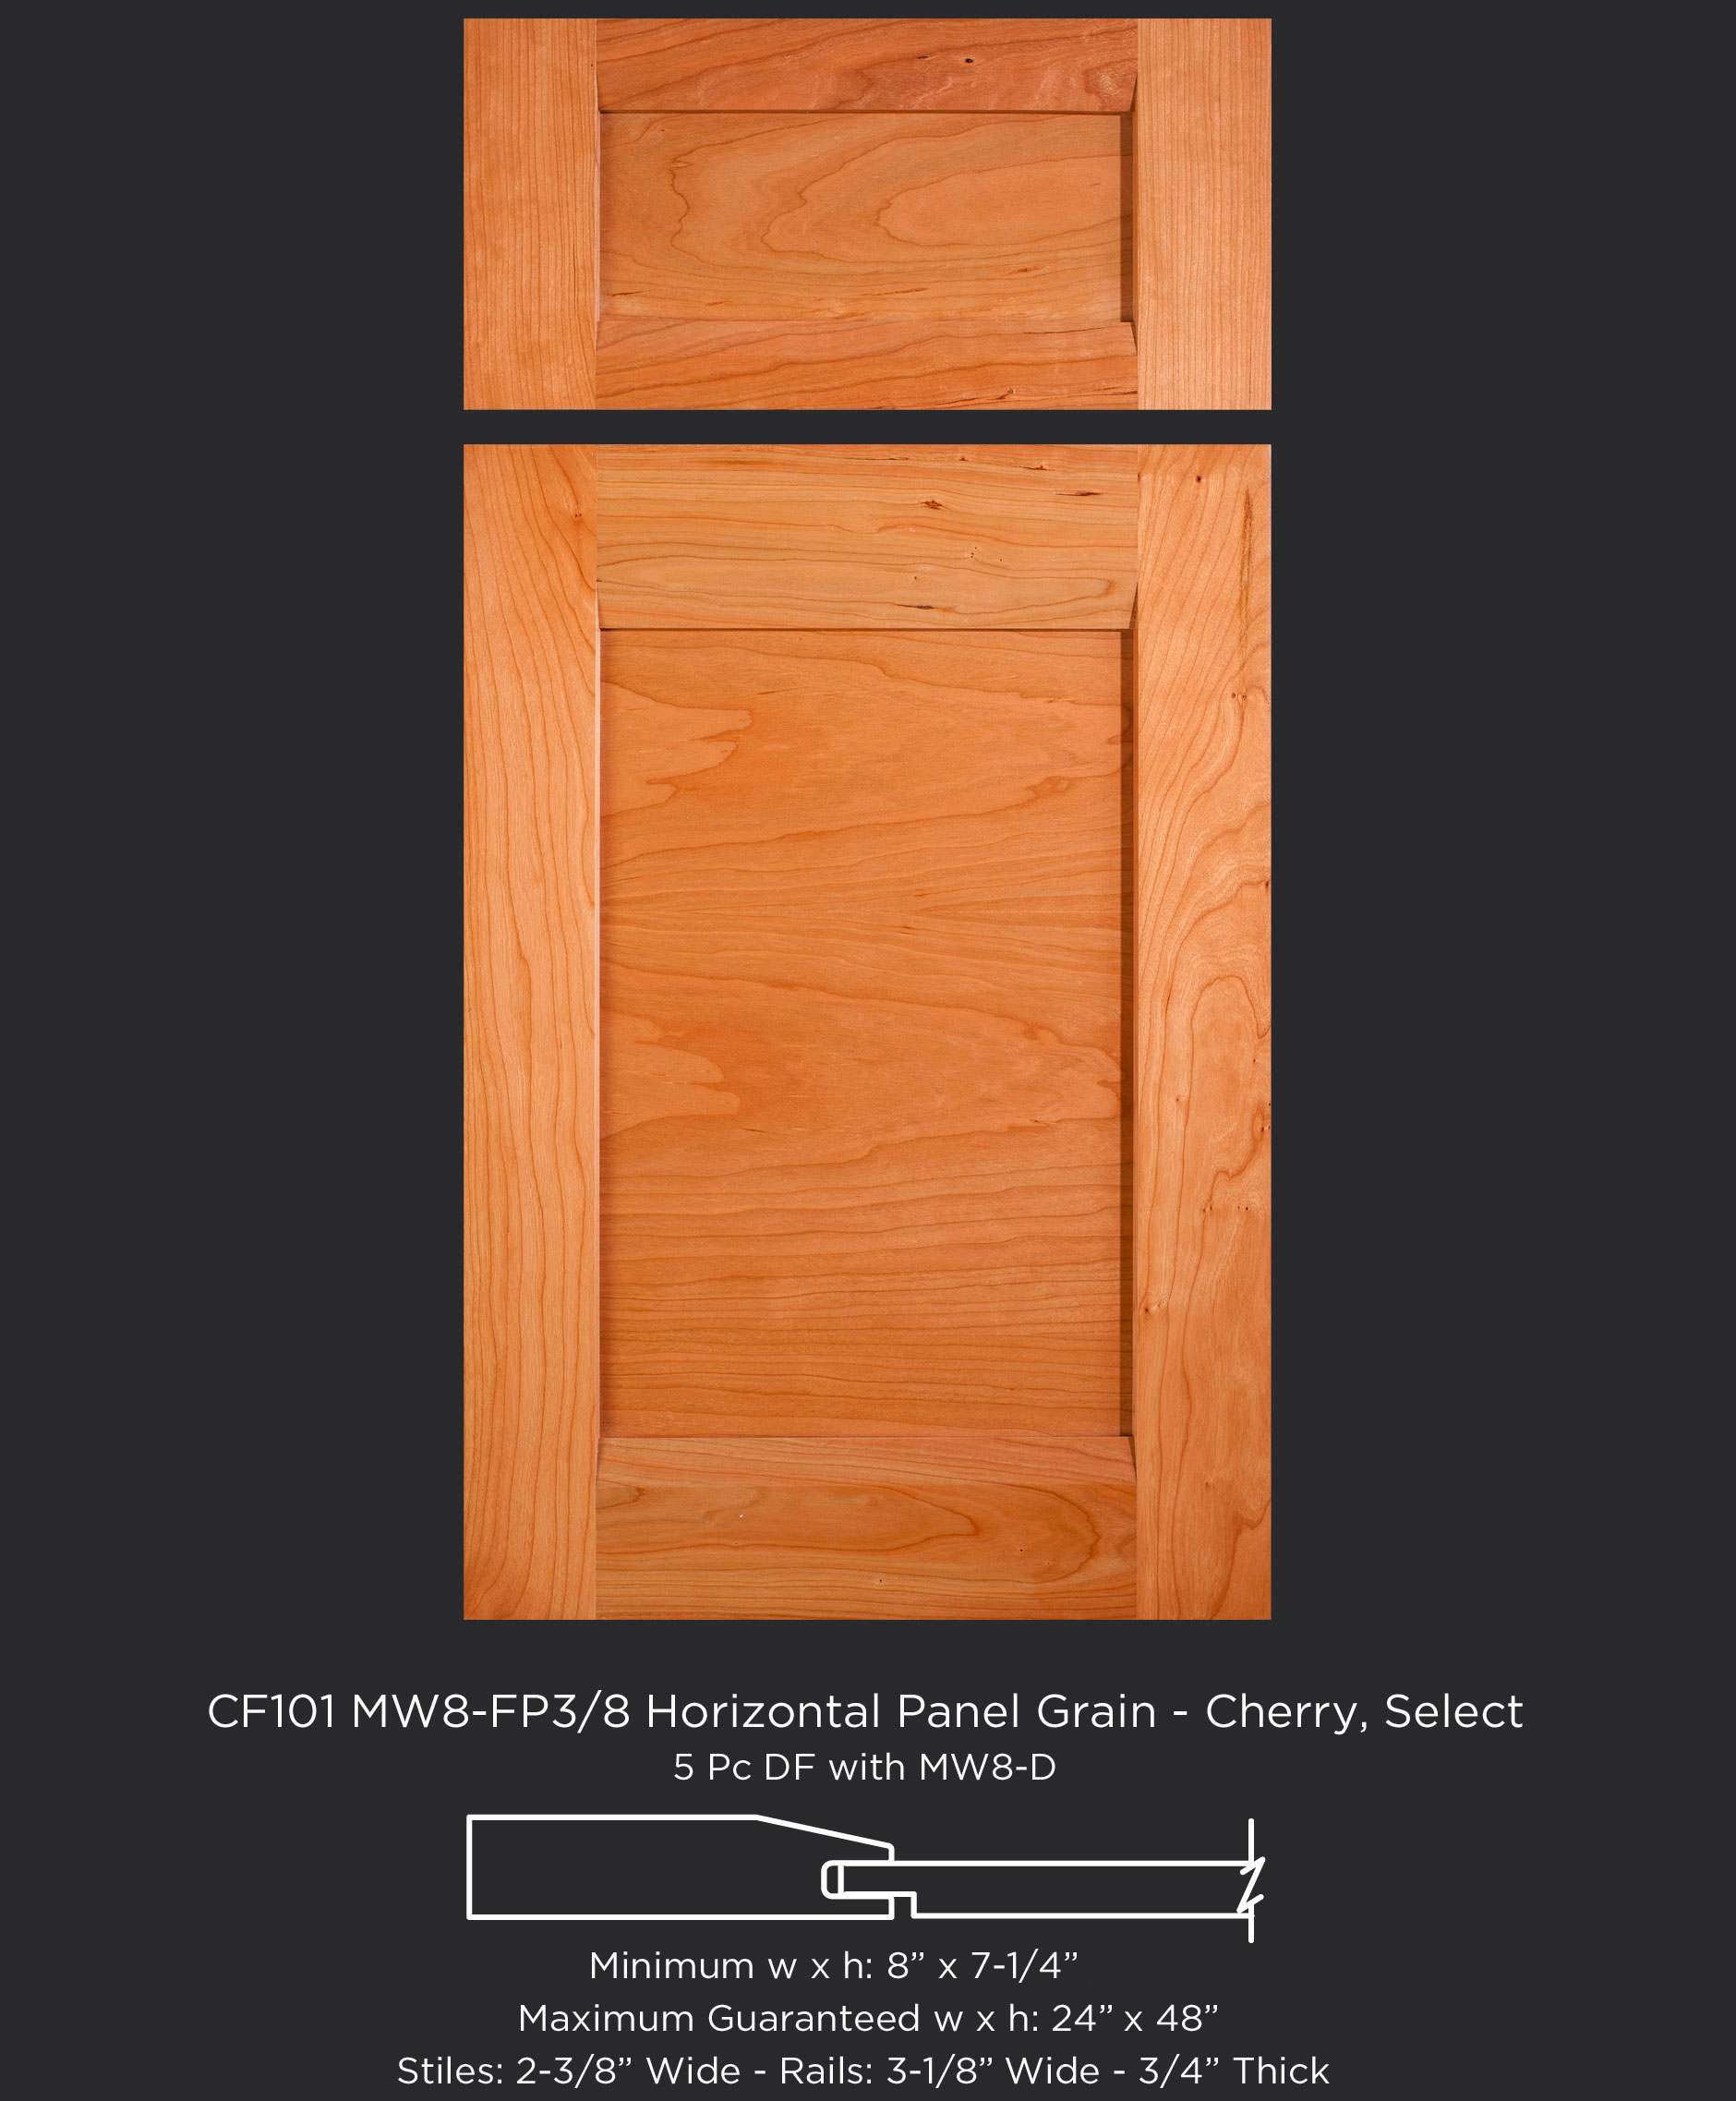 Combination Frame Cabinet Door CF101 MW8-FP3/8 with horizontal panel grain in Cherry, Select and 5-piece drawer front with MW8-D